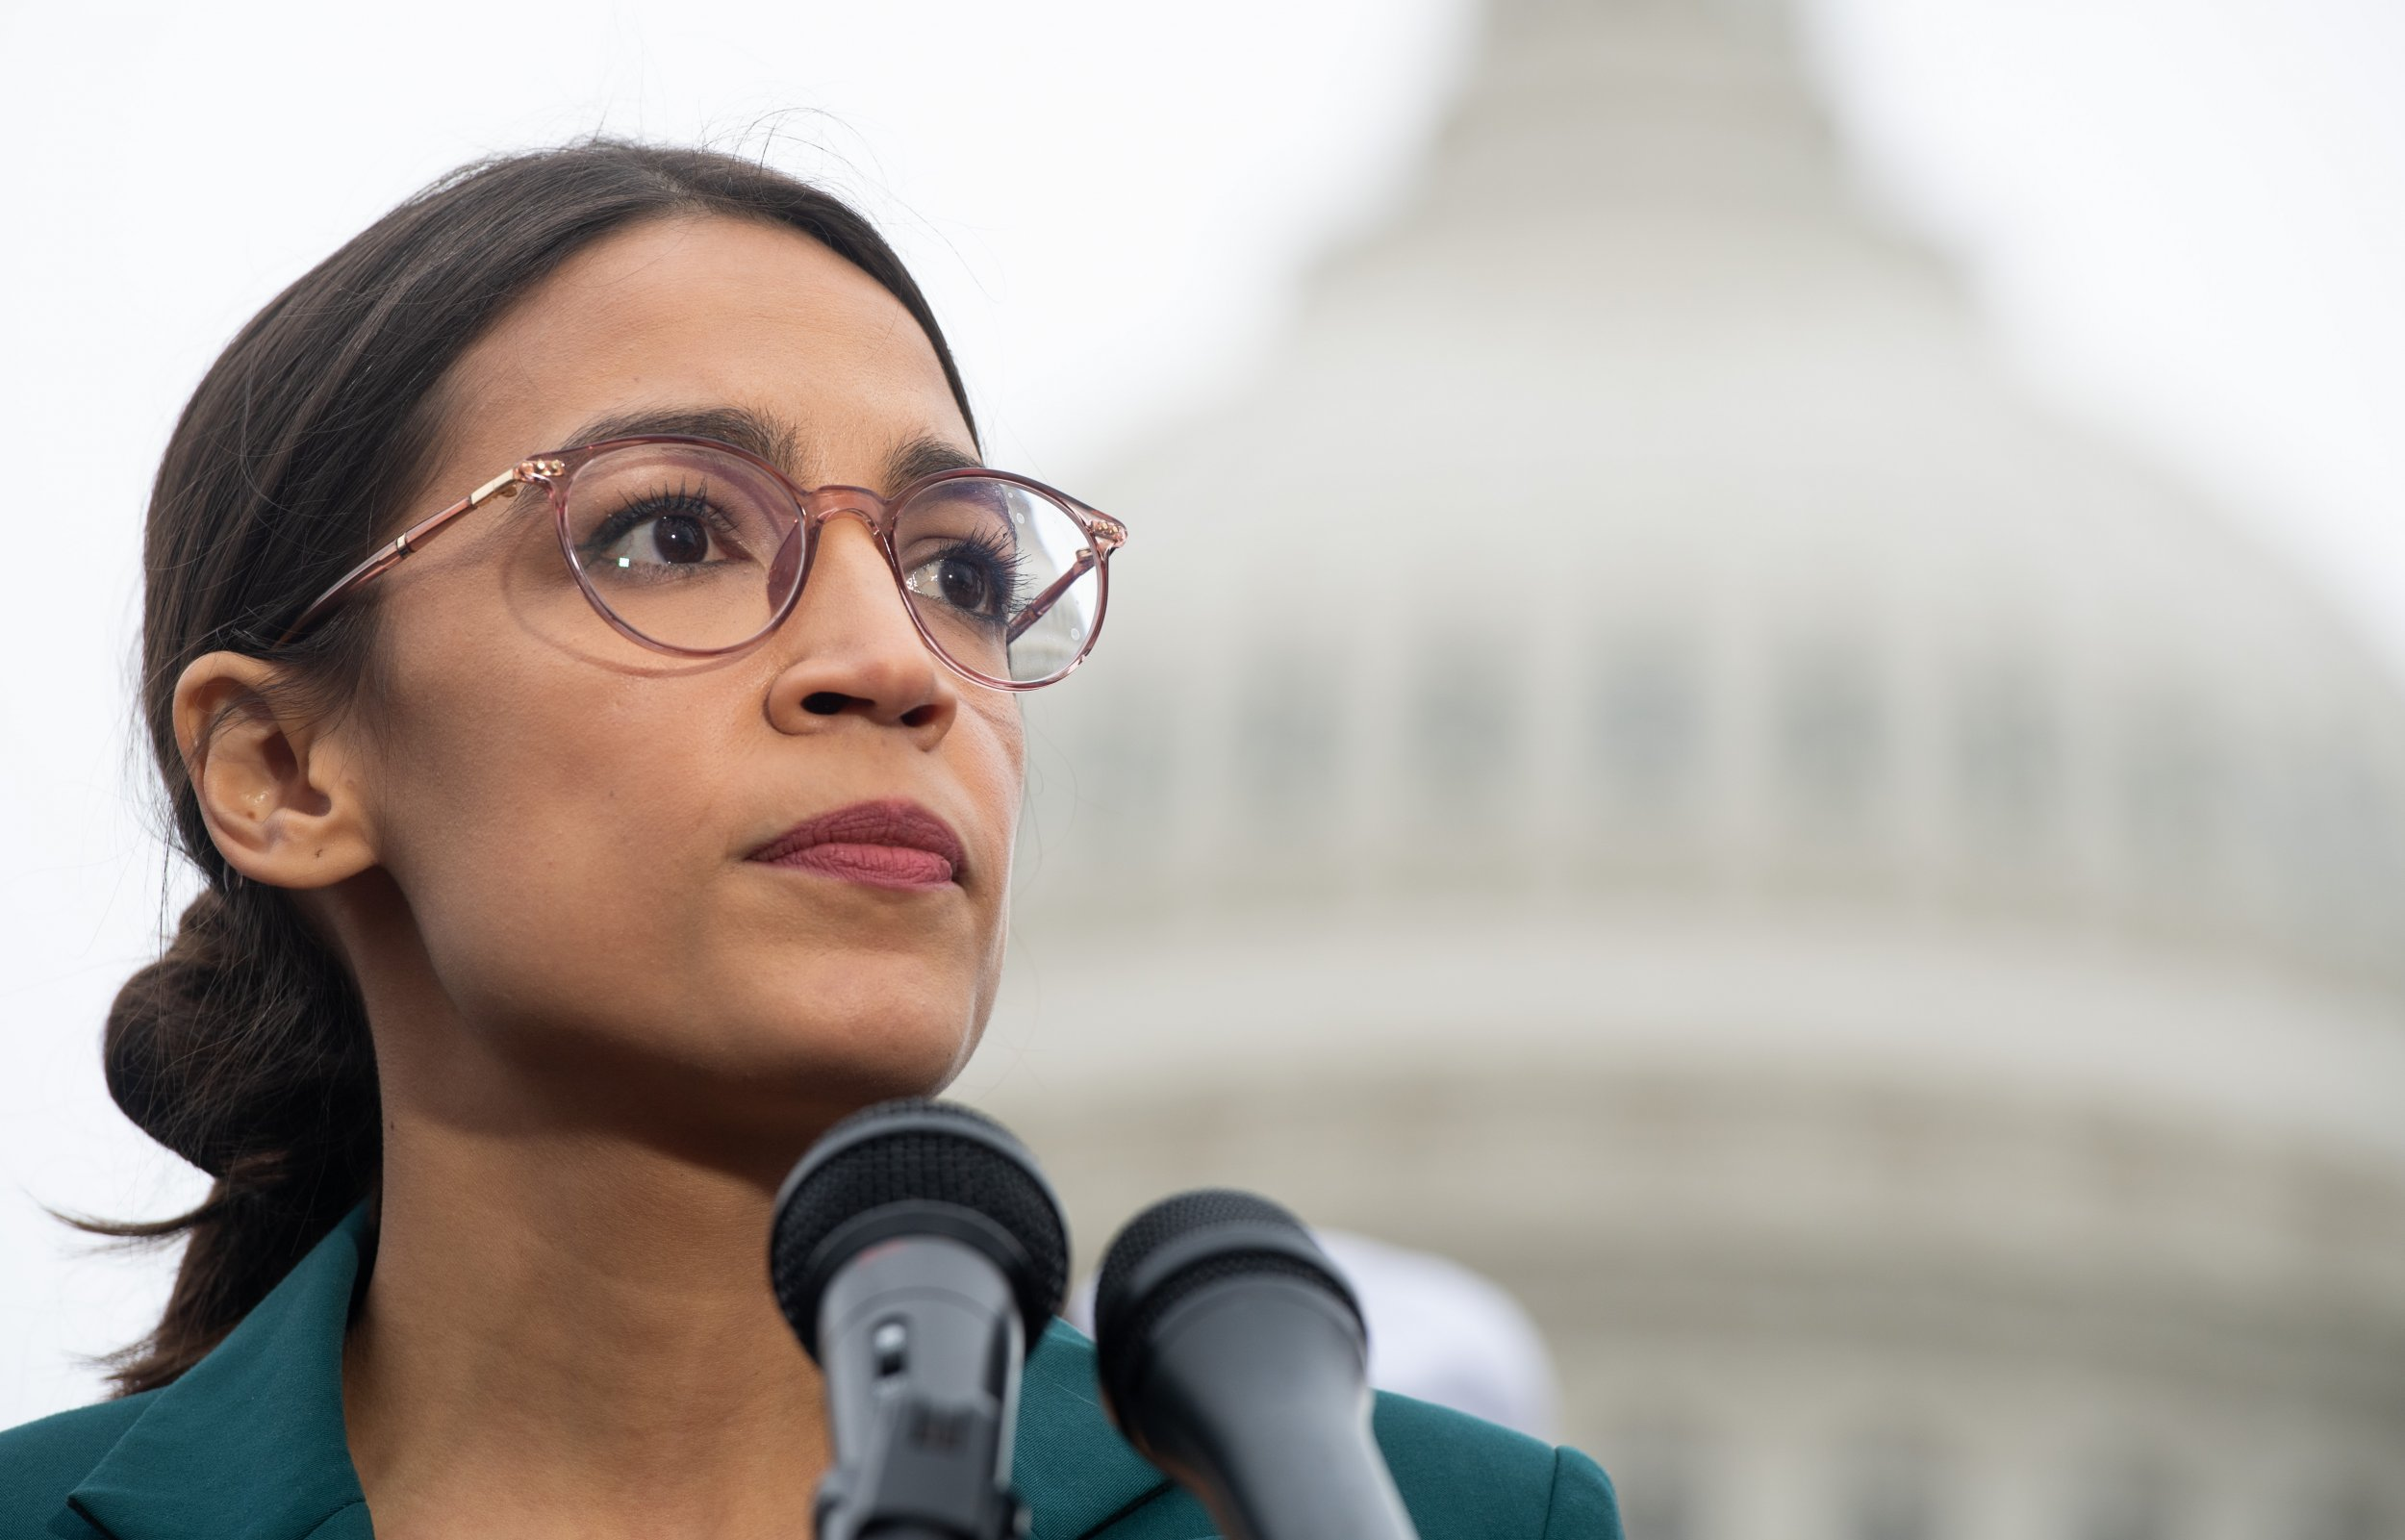 Alexandria Ocasio-Cortez, voting rights, debate, poll tax, Florida lawmaker